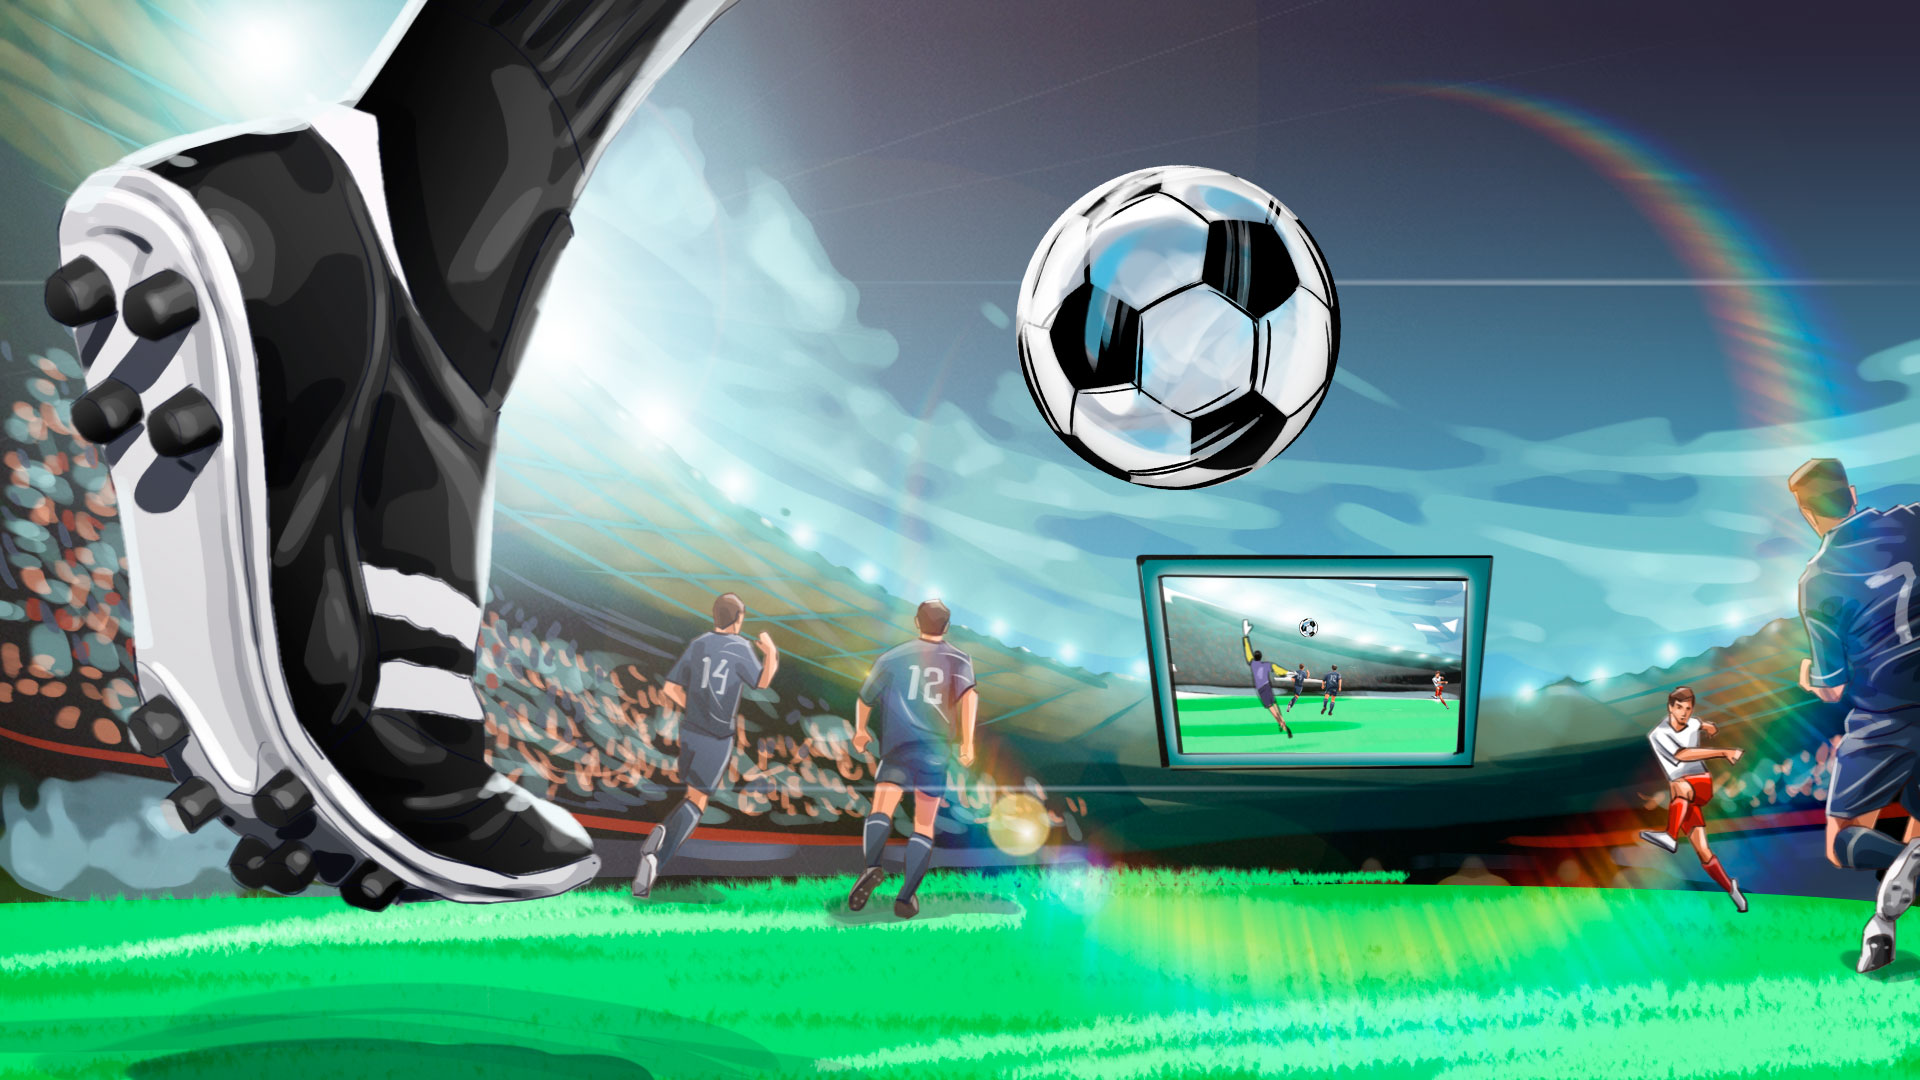 low angle view soccer illustration, 'Famous matches - illustrations for web game